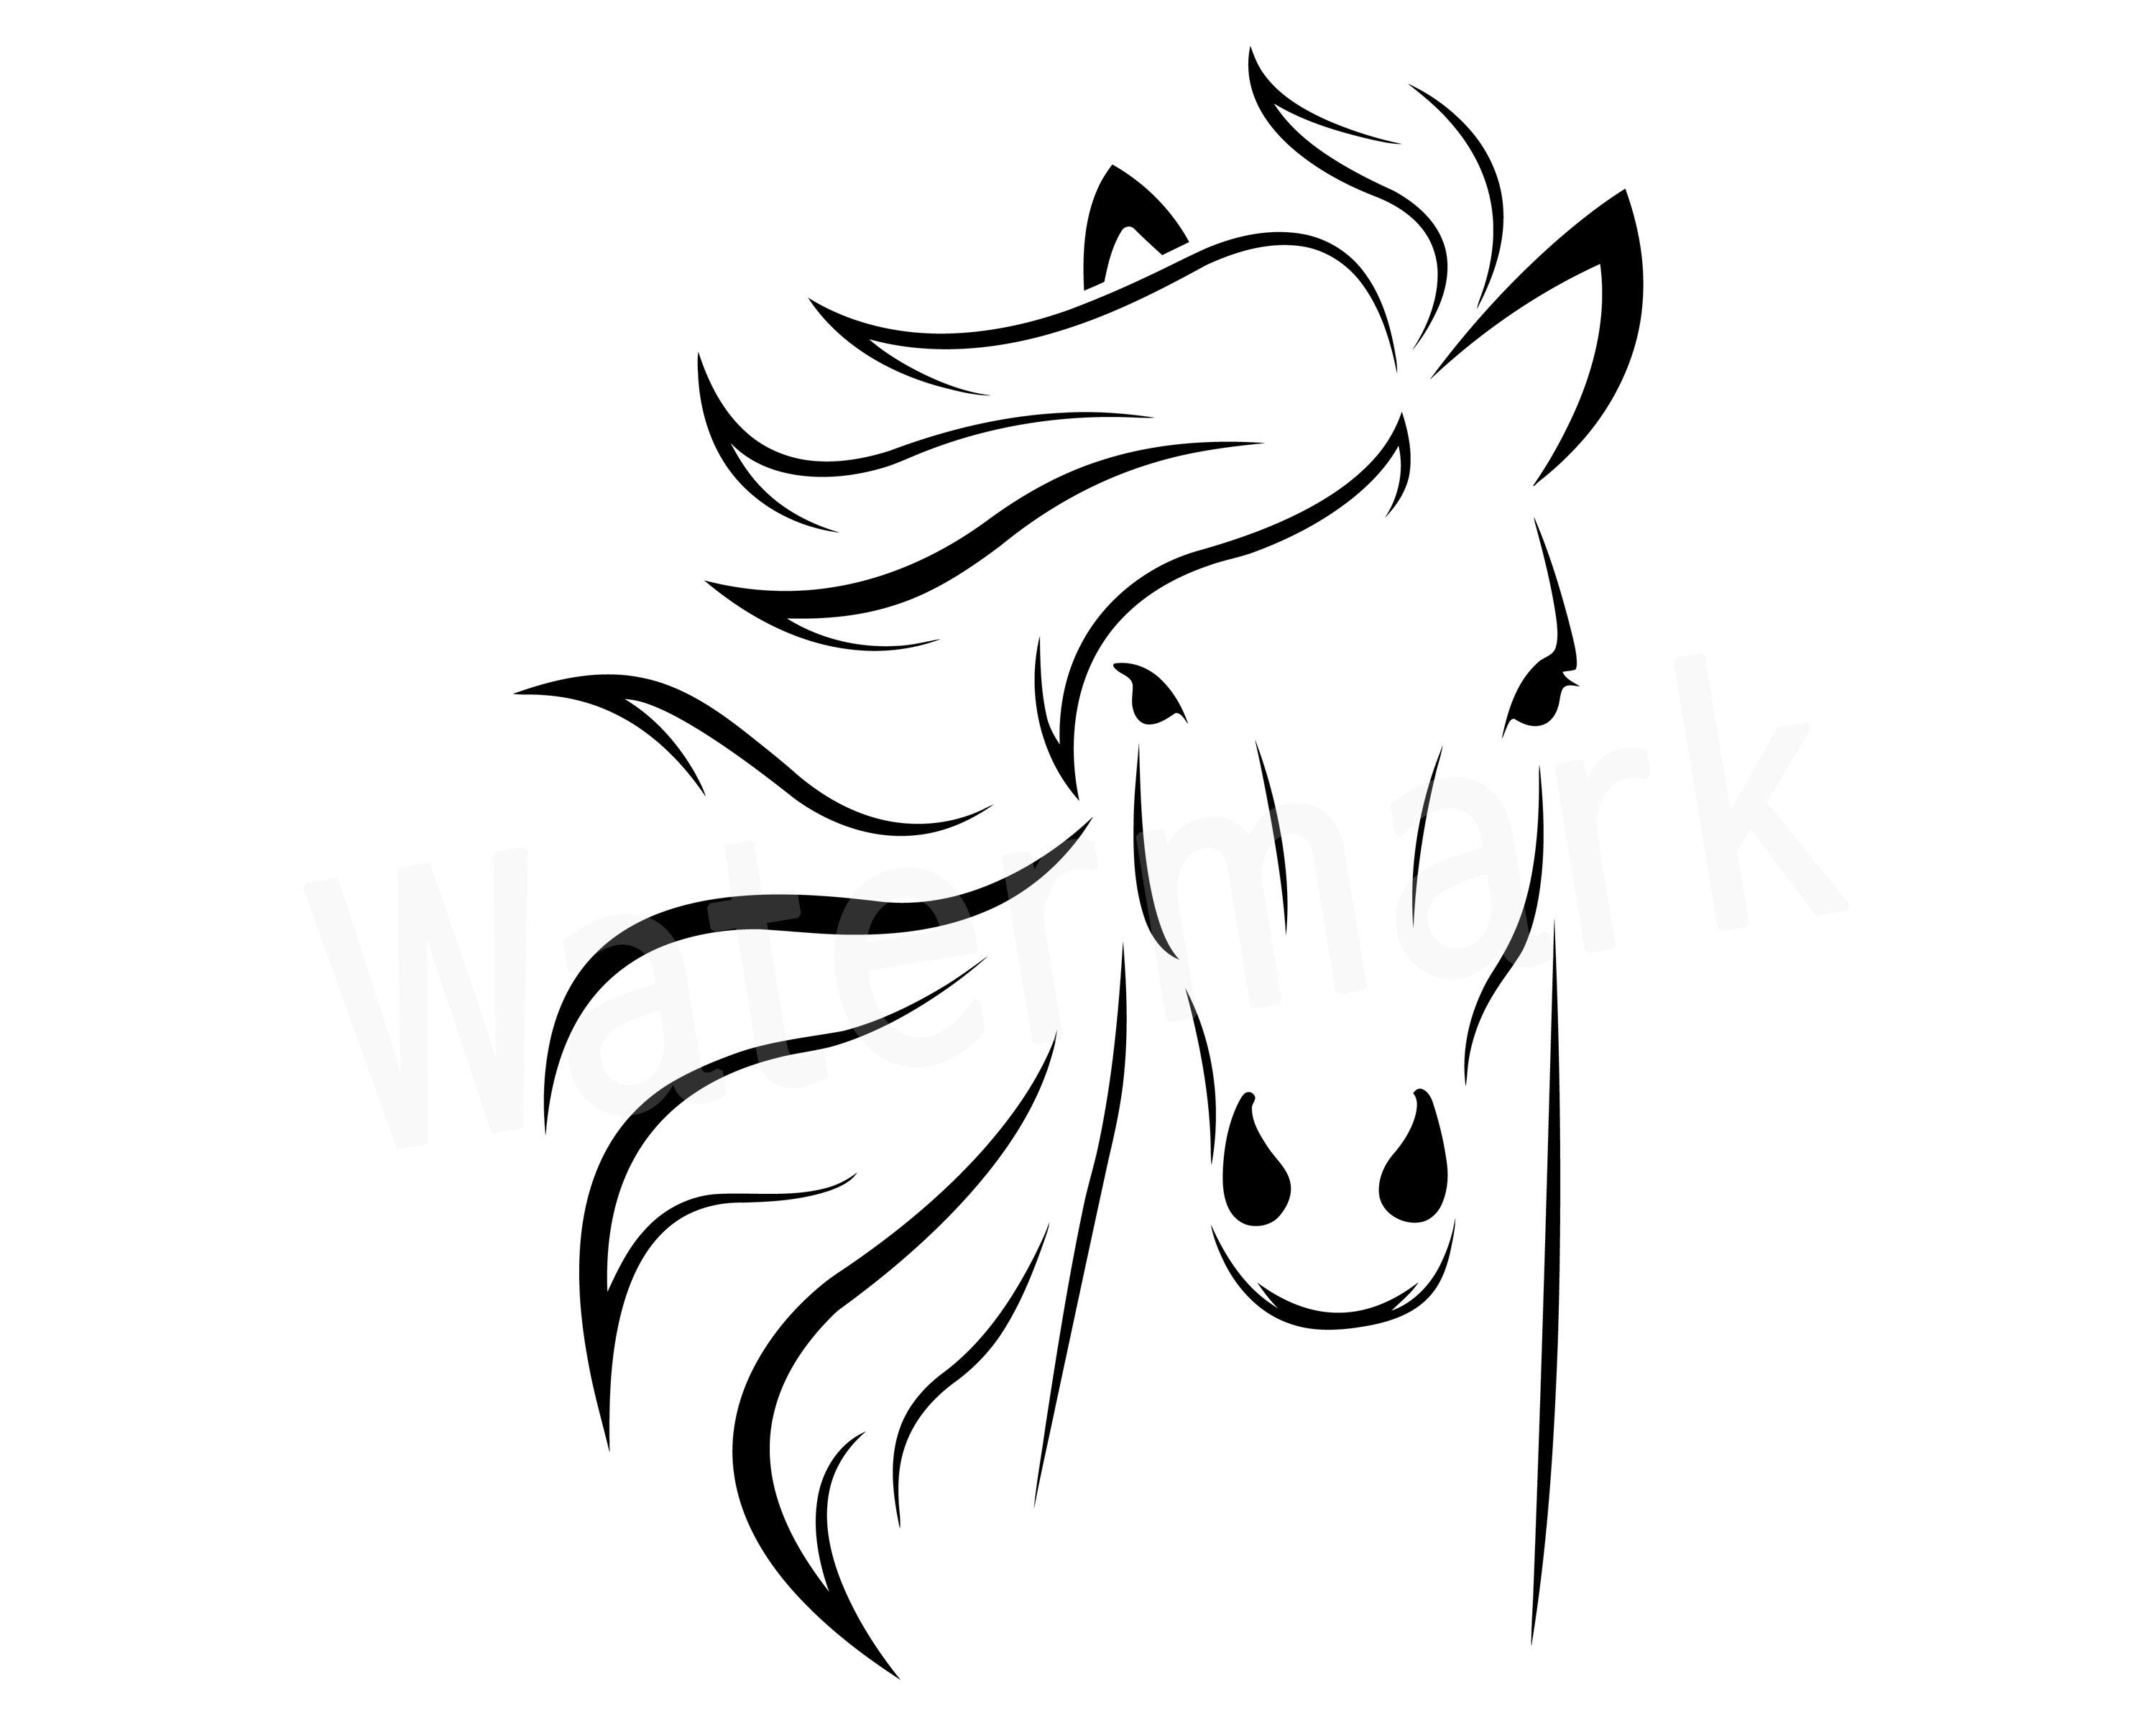 Horse clipart file. Head svg pony vector